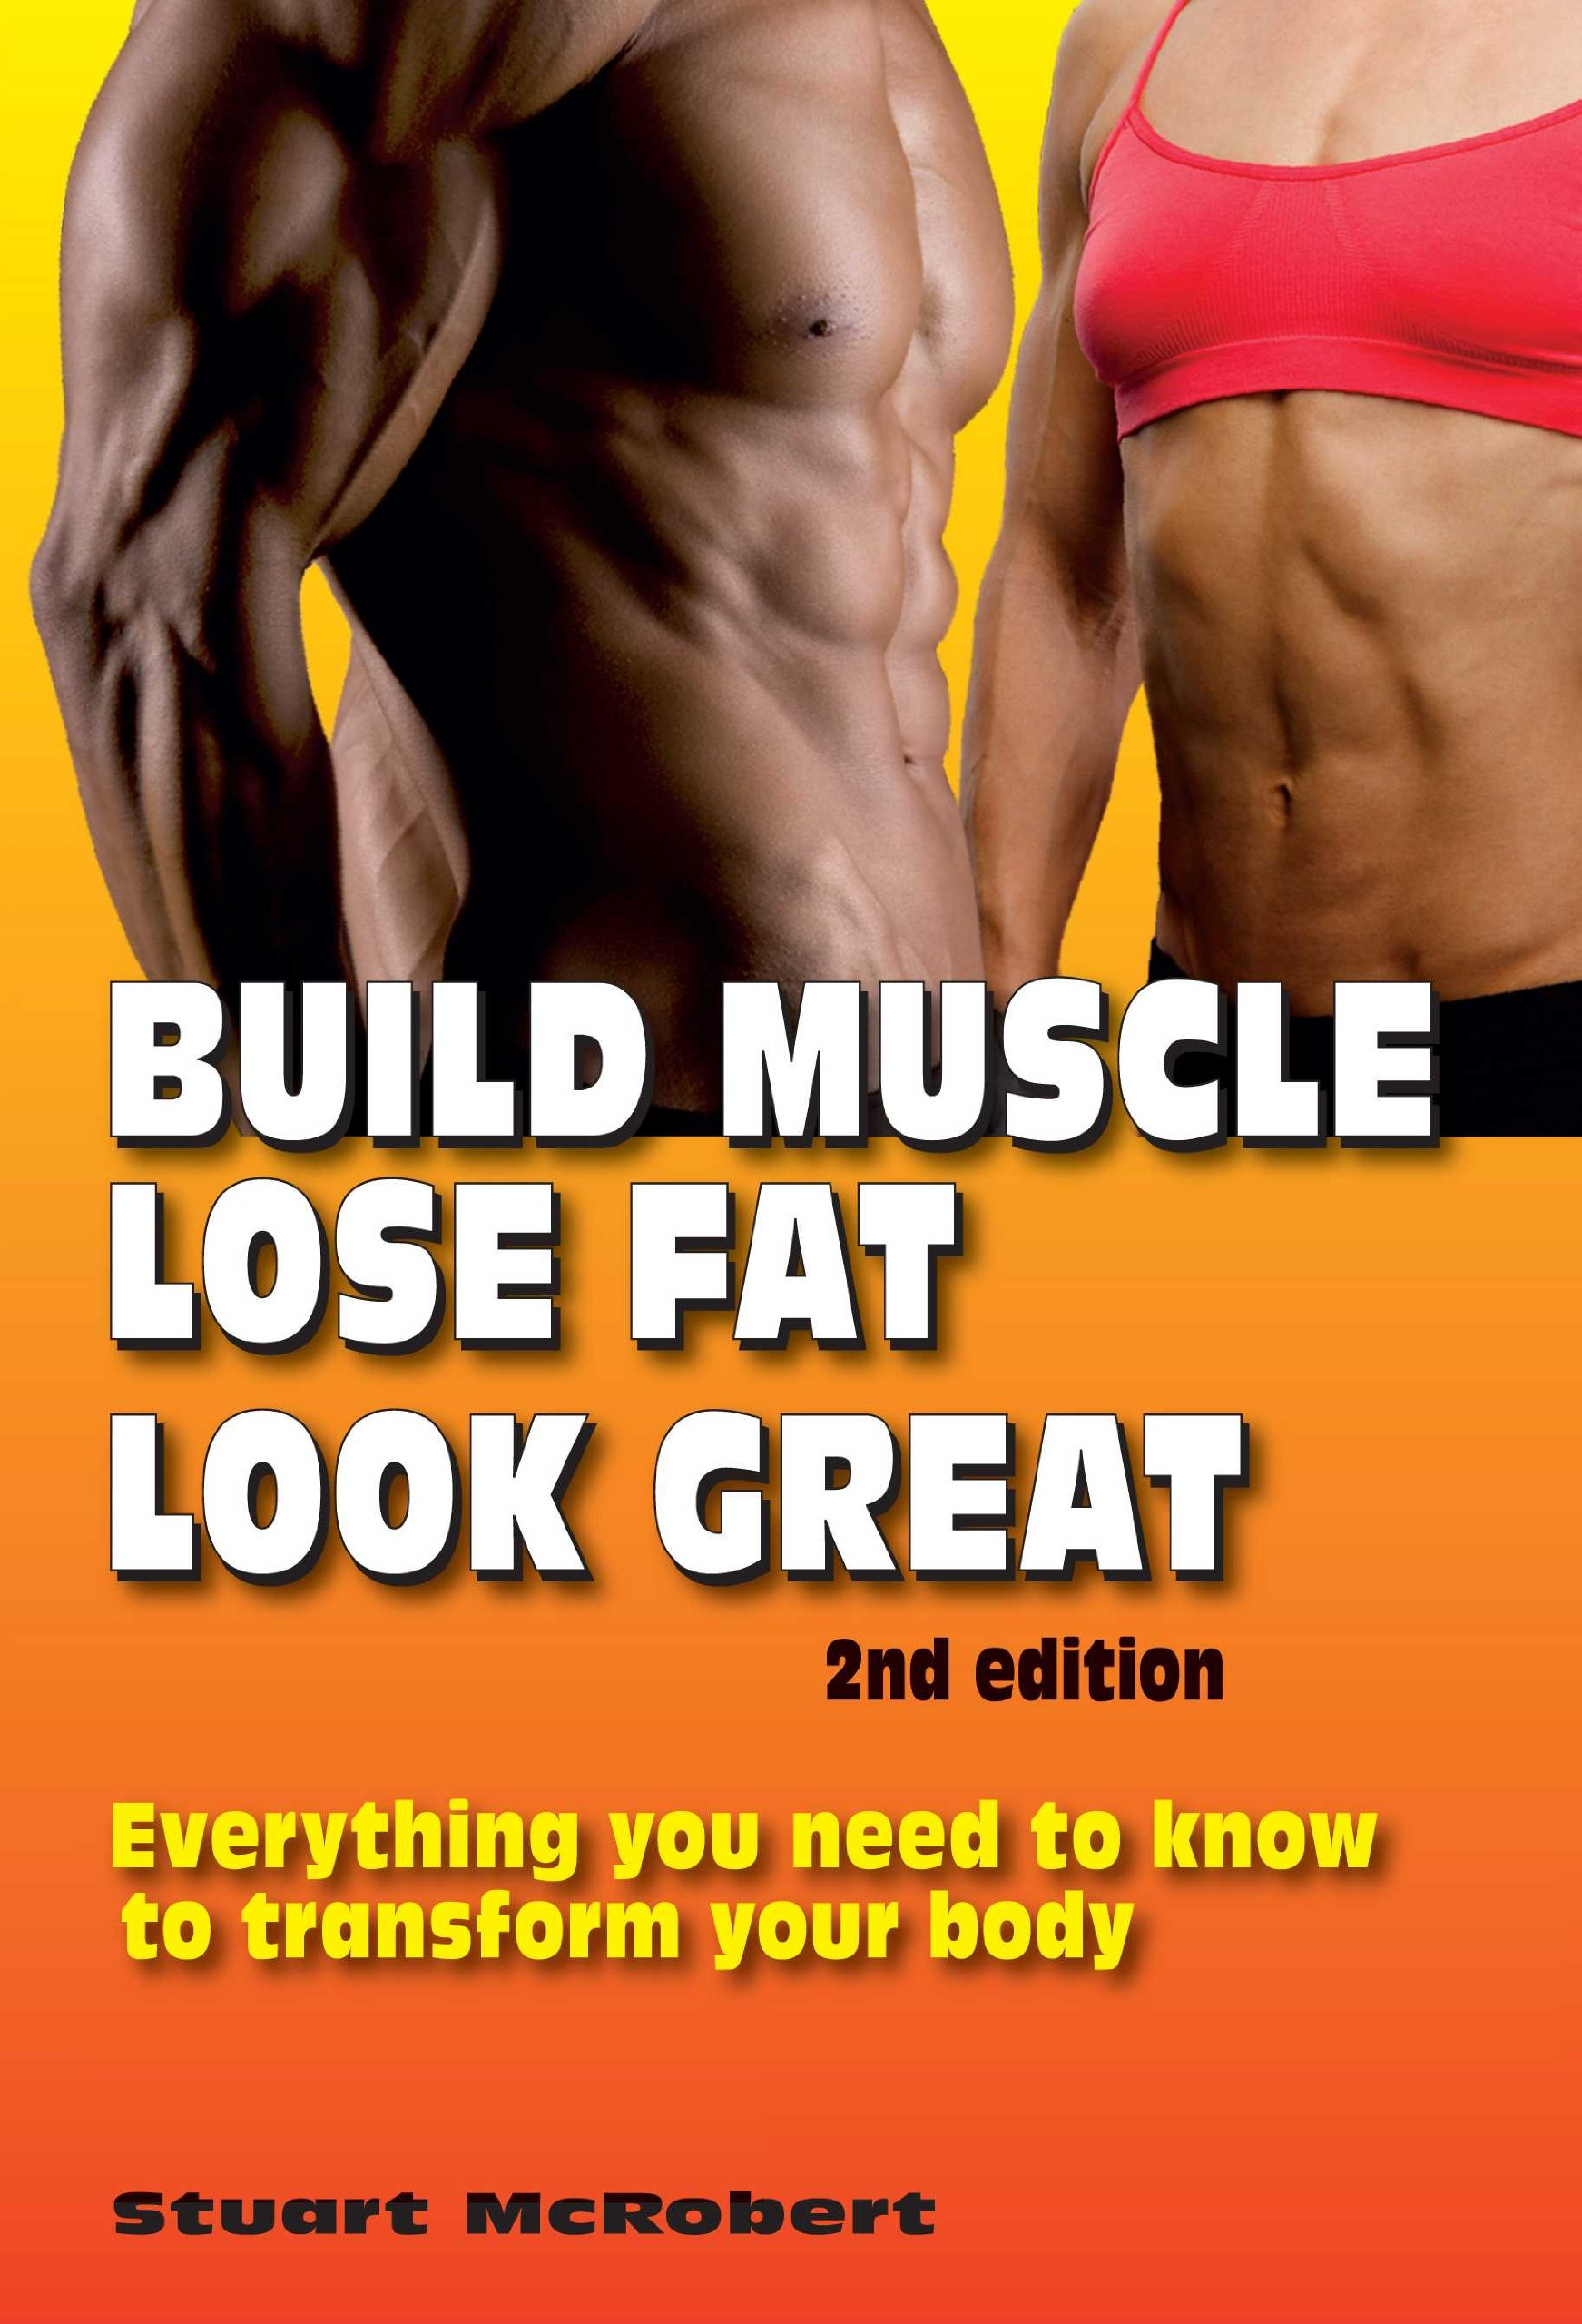 Building Muscle Losing Fat Pics